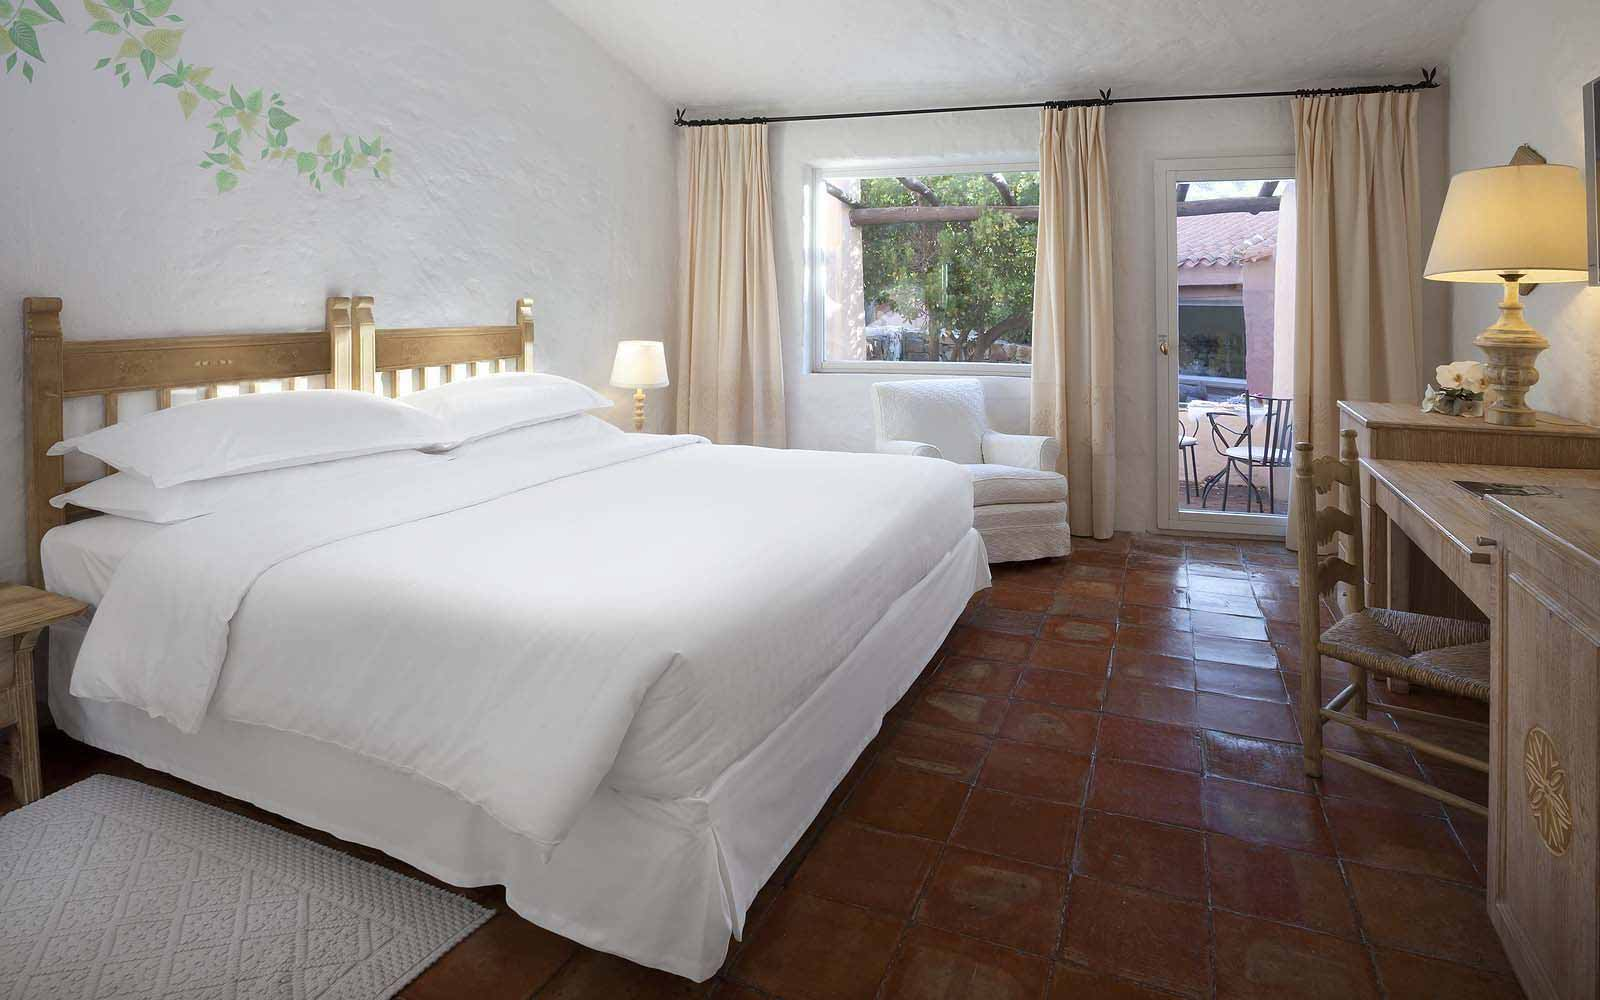 A Classic Room at the Hotel Cervo